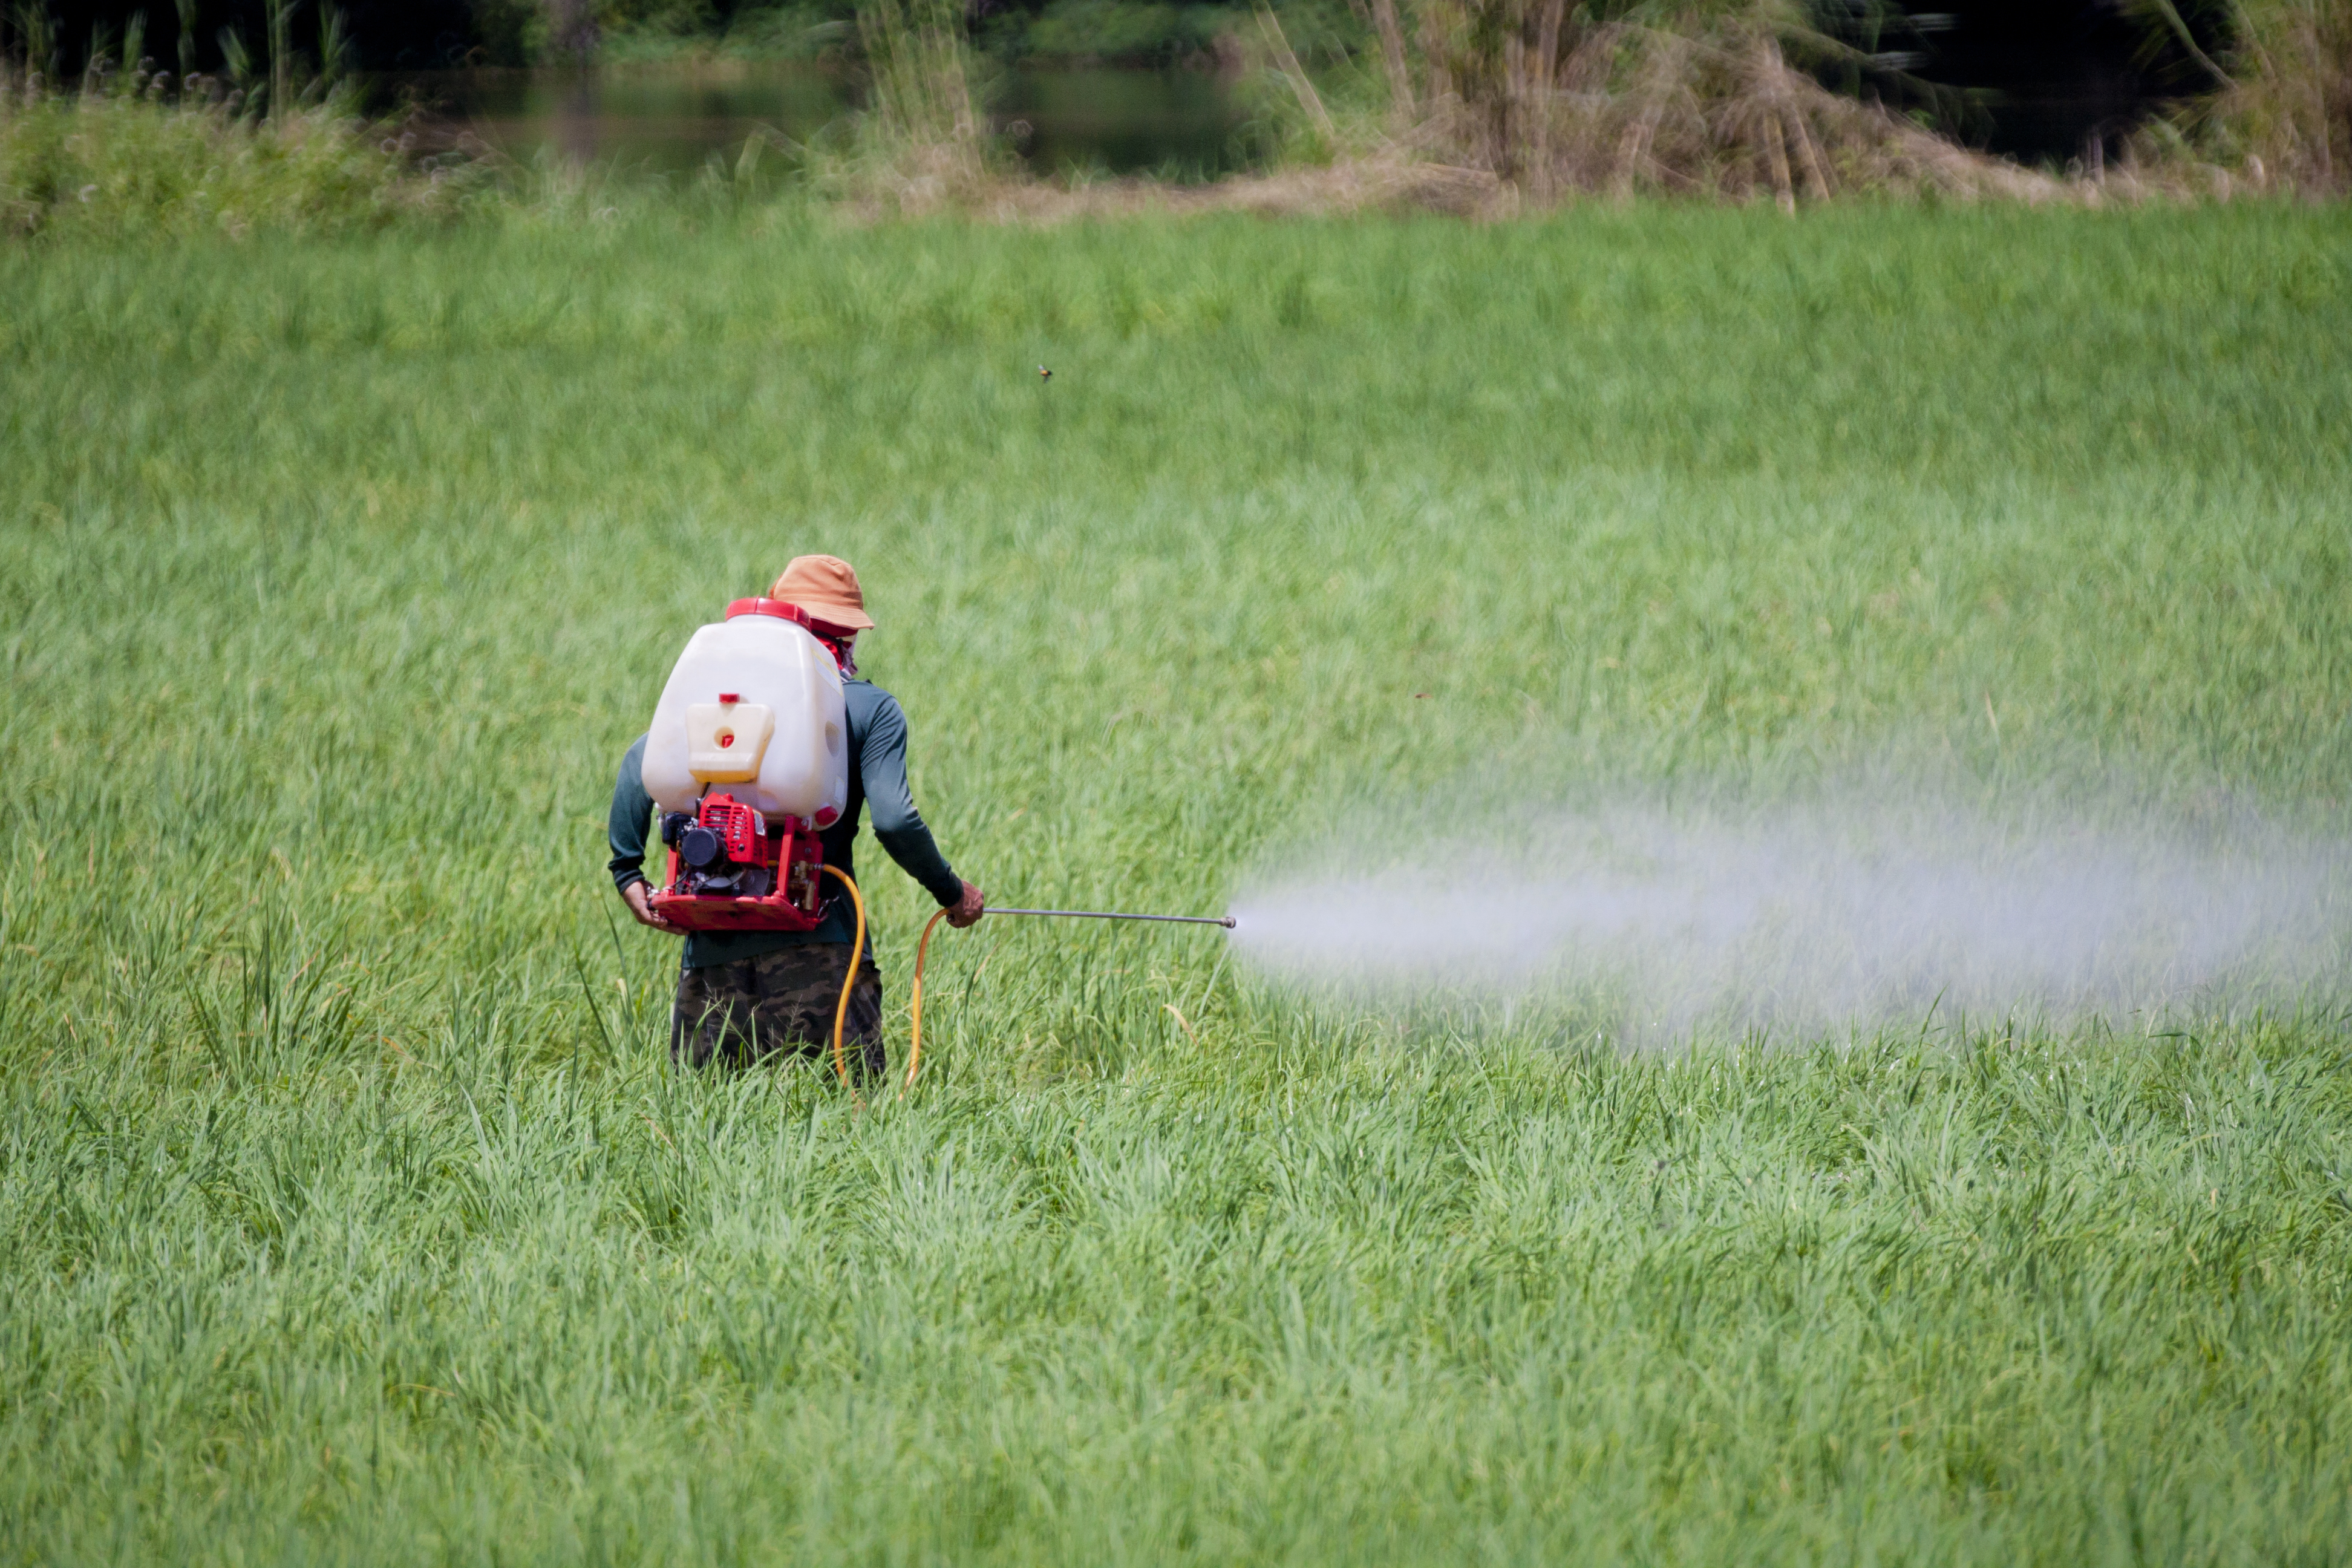 Manual spraying of pesticides in a rice field.